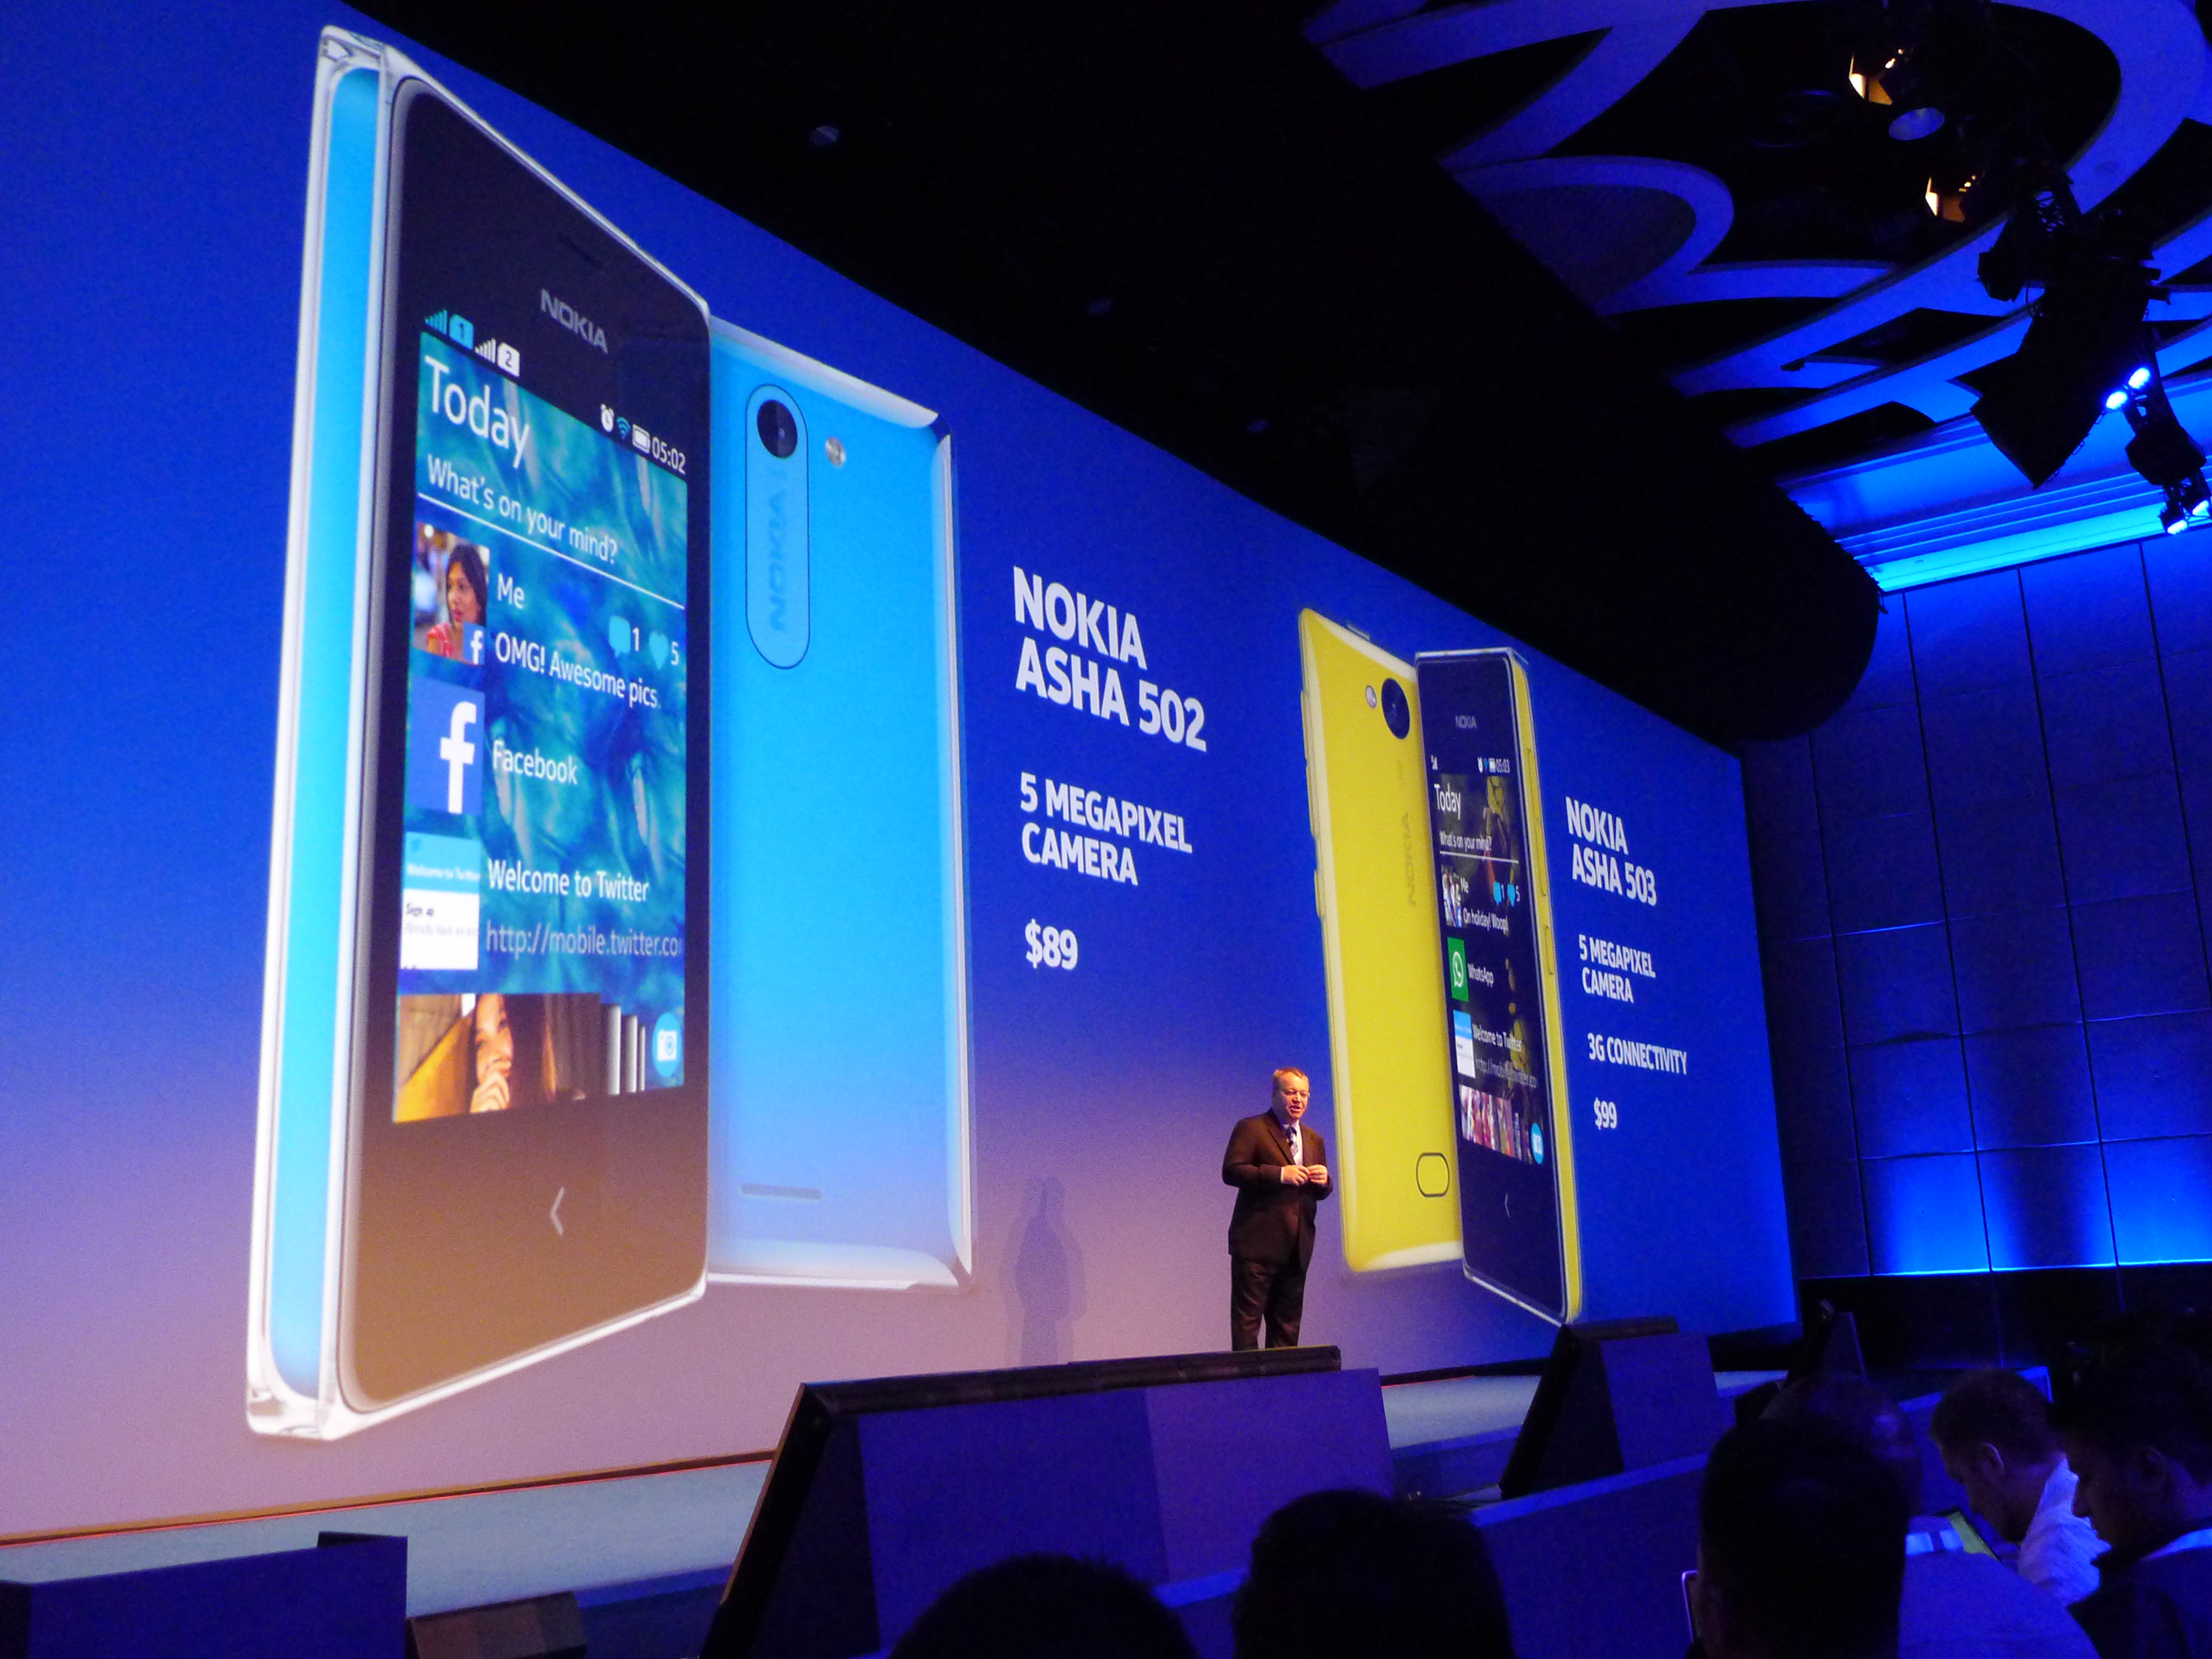 P1040467 Nokia announces Asha 500 for $69, Asha 502 for $89, and Asha 503 for $99